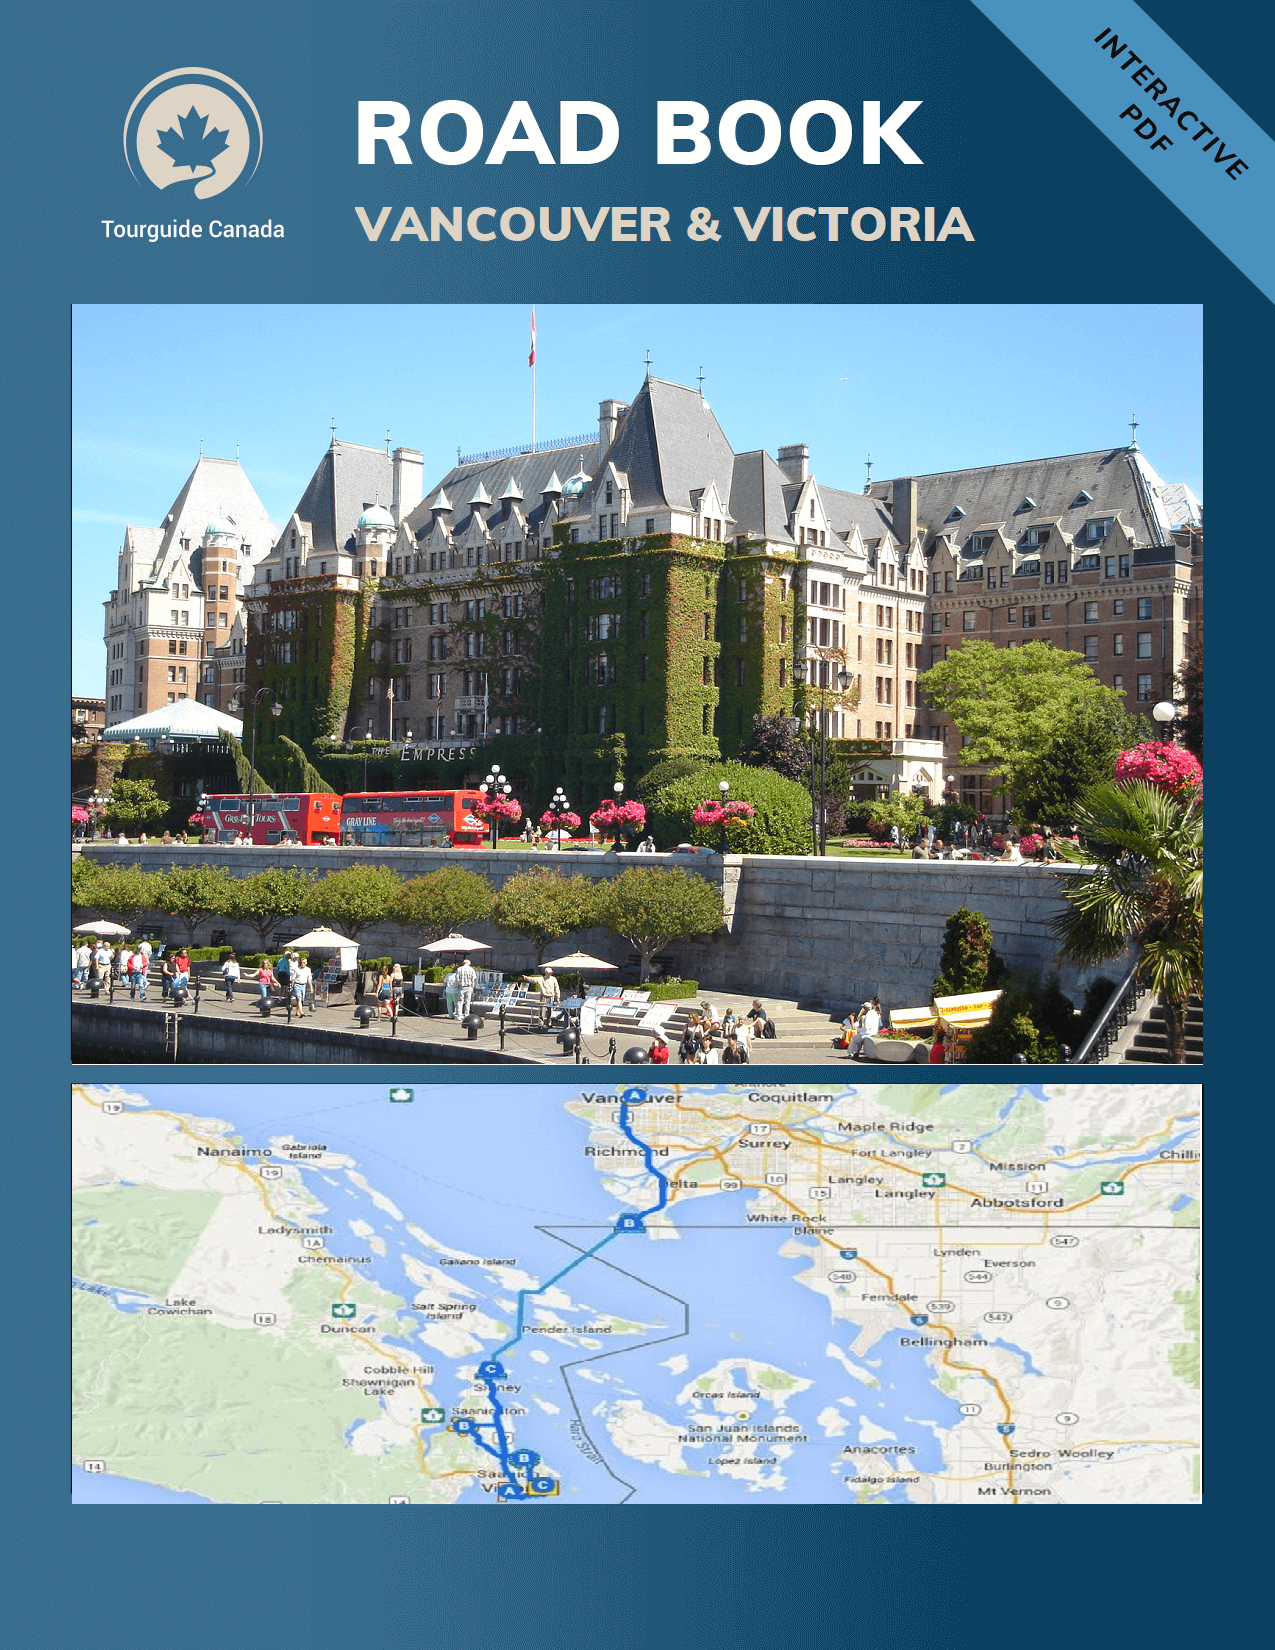 Travel Guide to Explore Vancouver and Victoria, BC